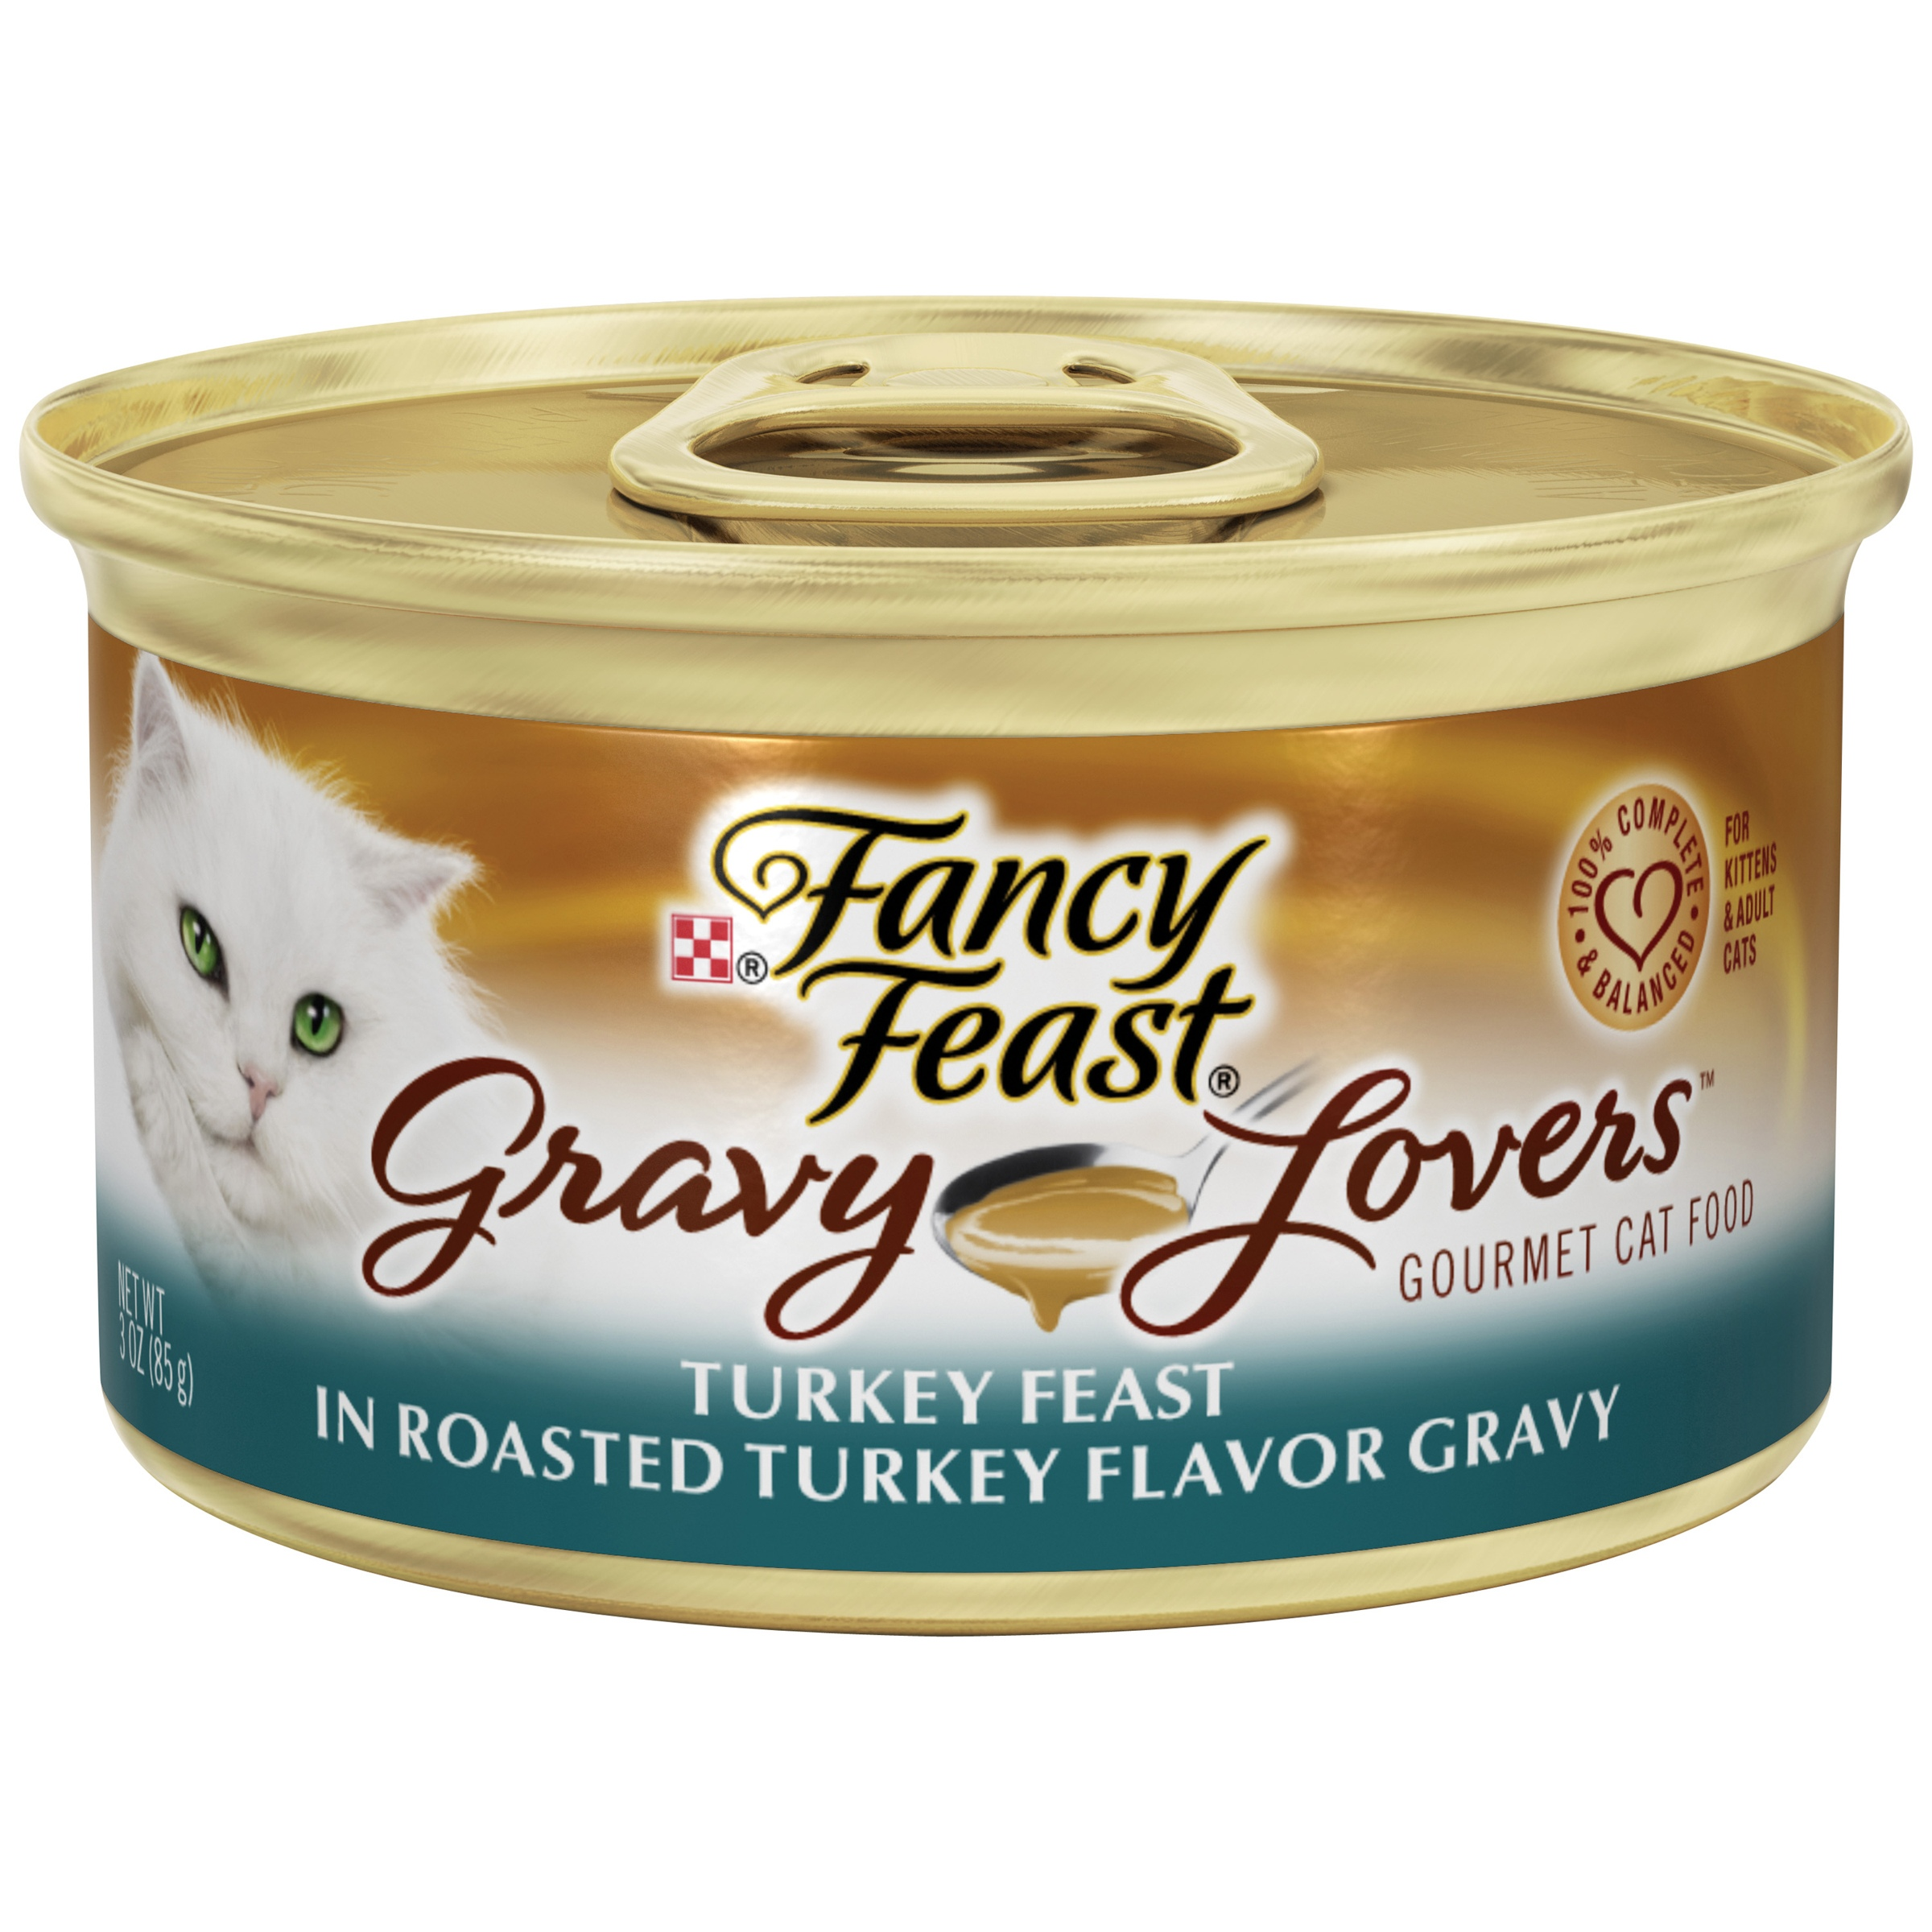 Purina Fancy Feast Gravy Lovers Turkey Feast in Roasted Turkey Flavor Gravy Wet Cat Food, 3-oz. Can